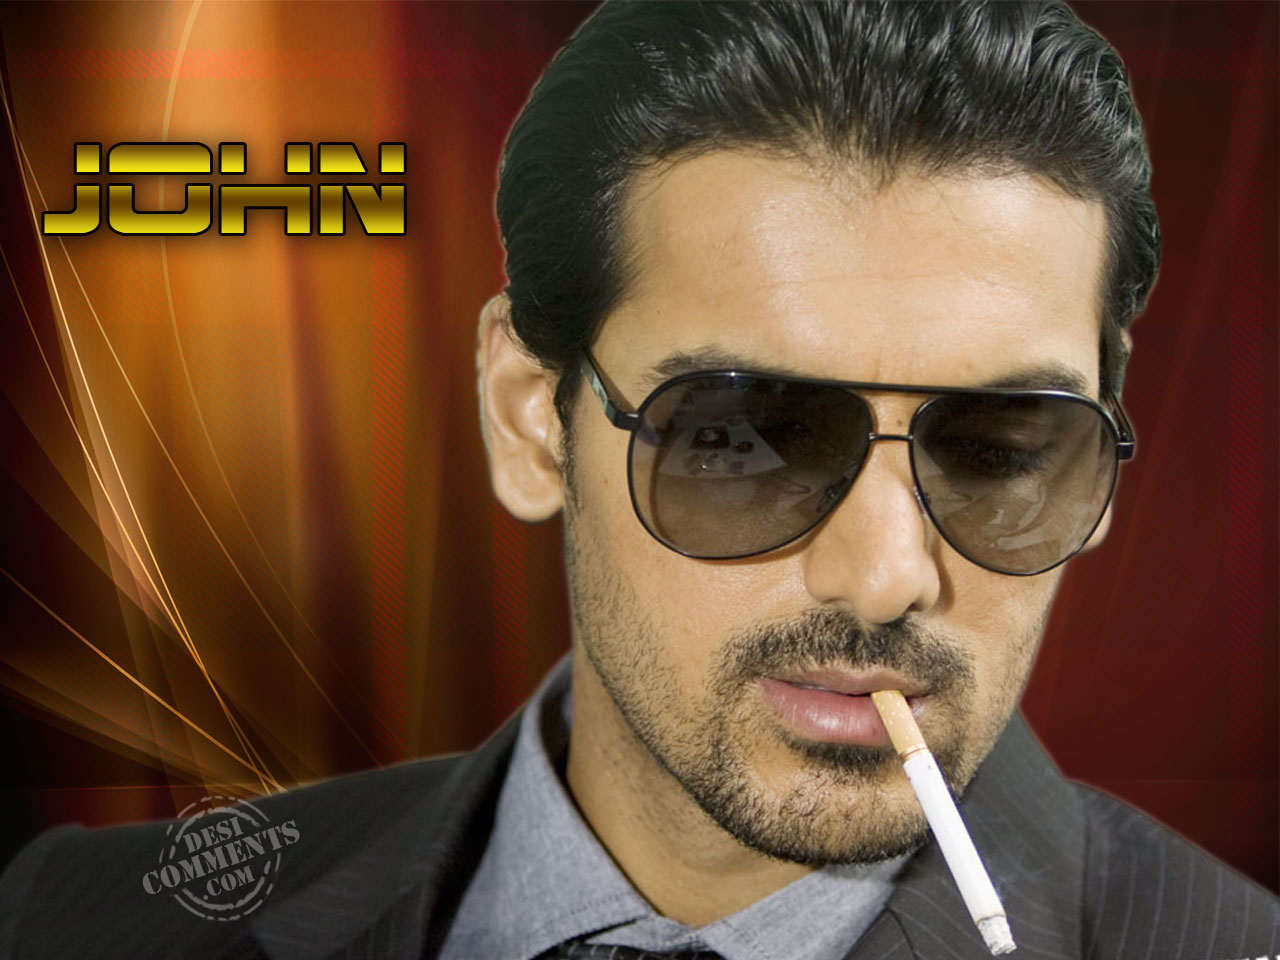 Deep Quotes About Life Wallpaper John Abraham Wallpapers Bollywood Wallpapers